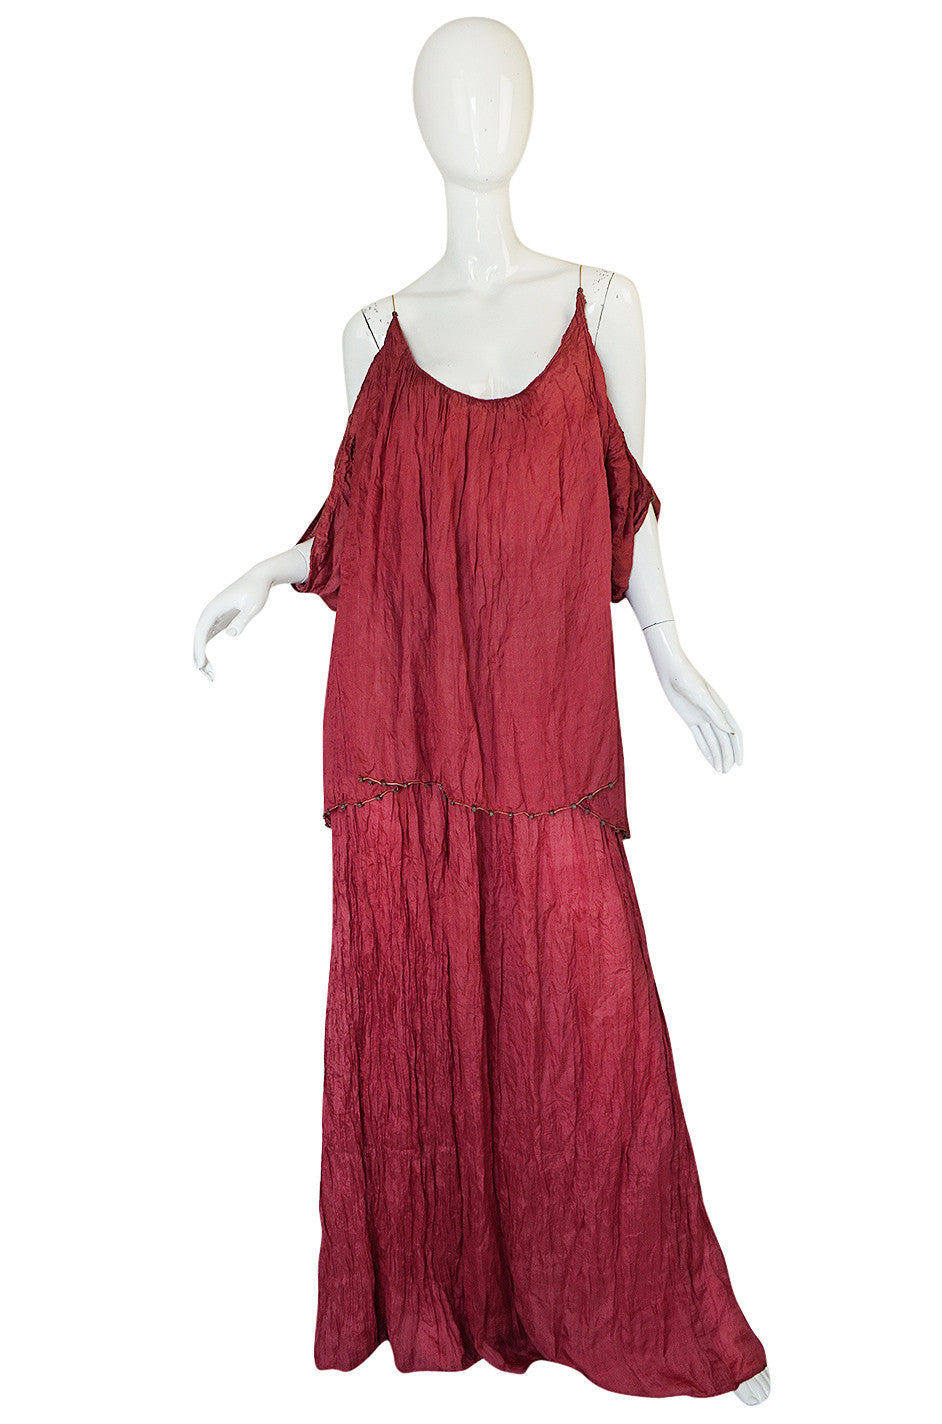 c1907-1920 Mariano Fortuny Pleated Muted Raspberry Silk Gown ...